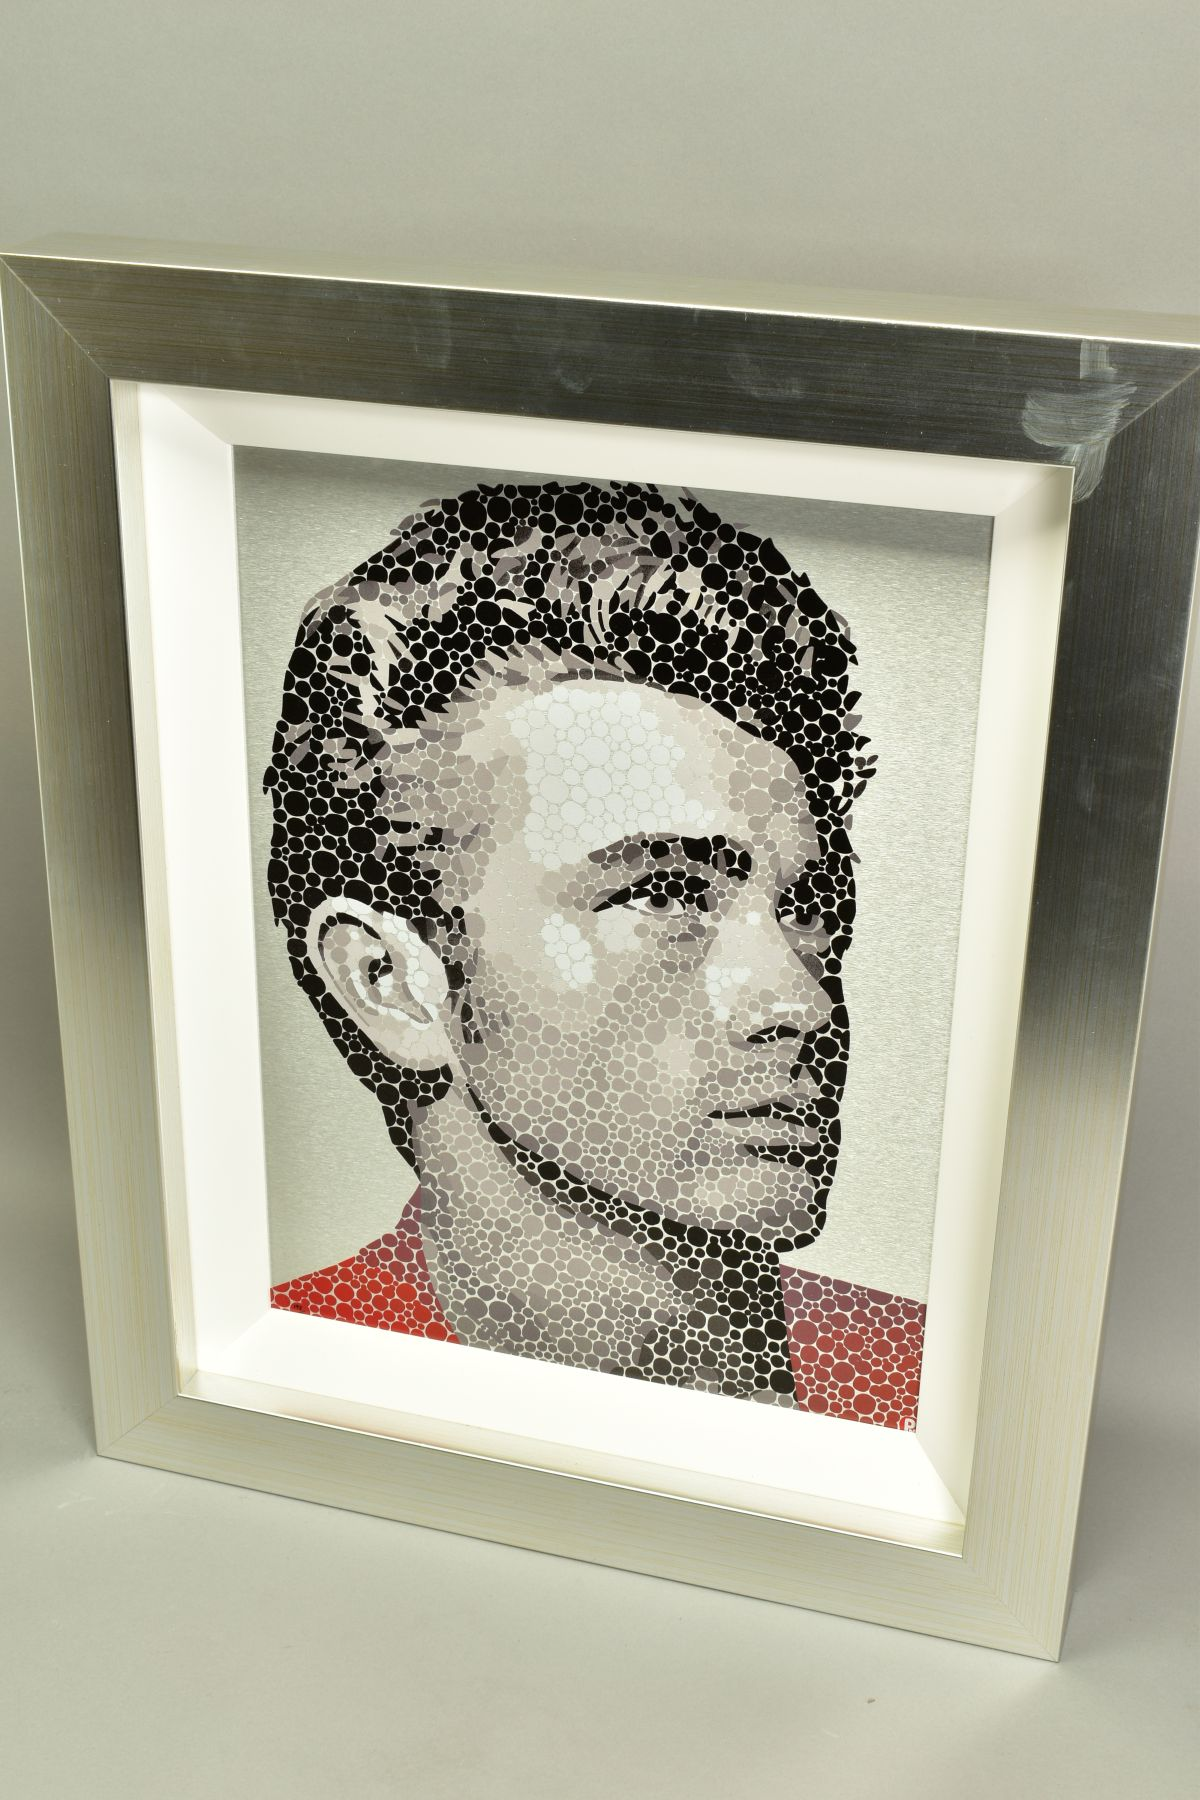 PAUL NORMANSELL (BRITISH 1978), 'James Dean, The Rebel', a Limited Edition print on aluminium, - Image 5 of 6